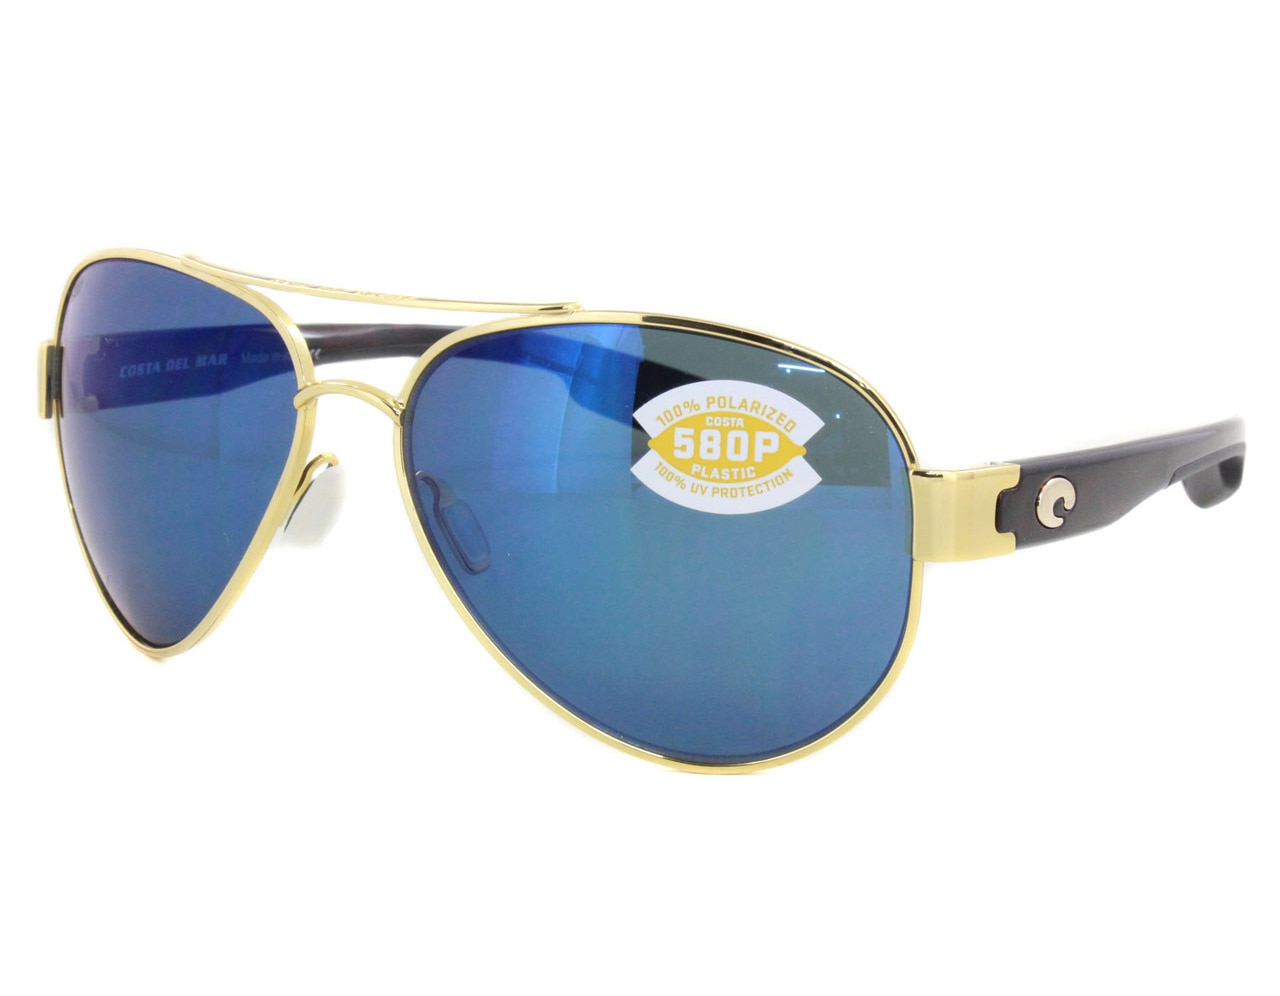 6c6b7039c Details about New Costa del Mar South Point Blue Mirror SO26-OBMP580P  Sunglasses